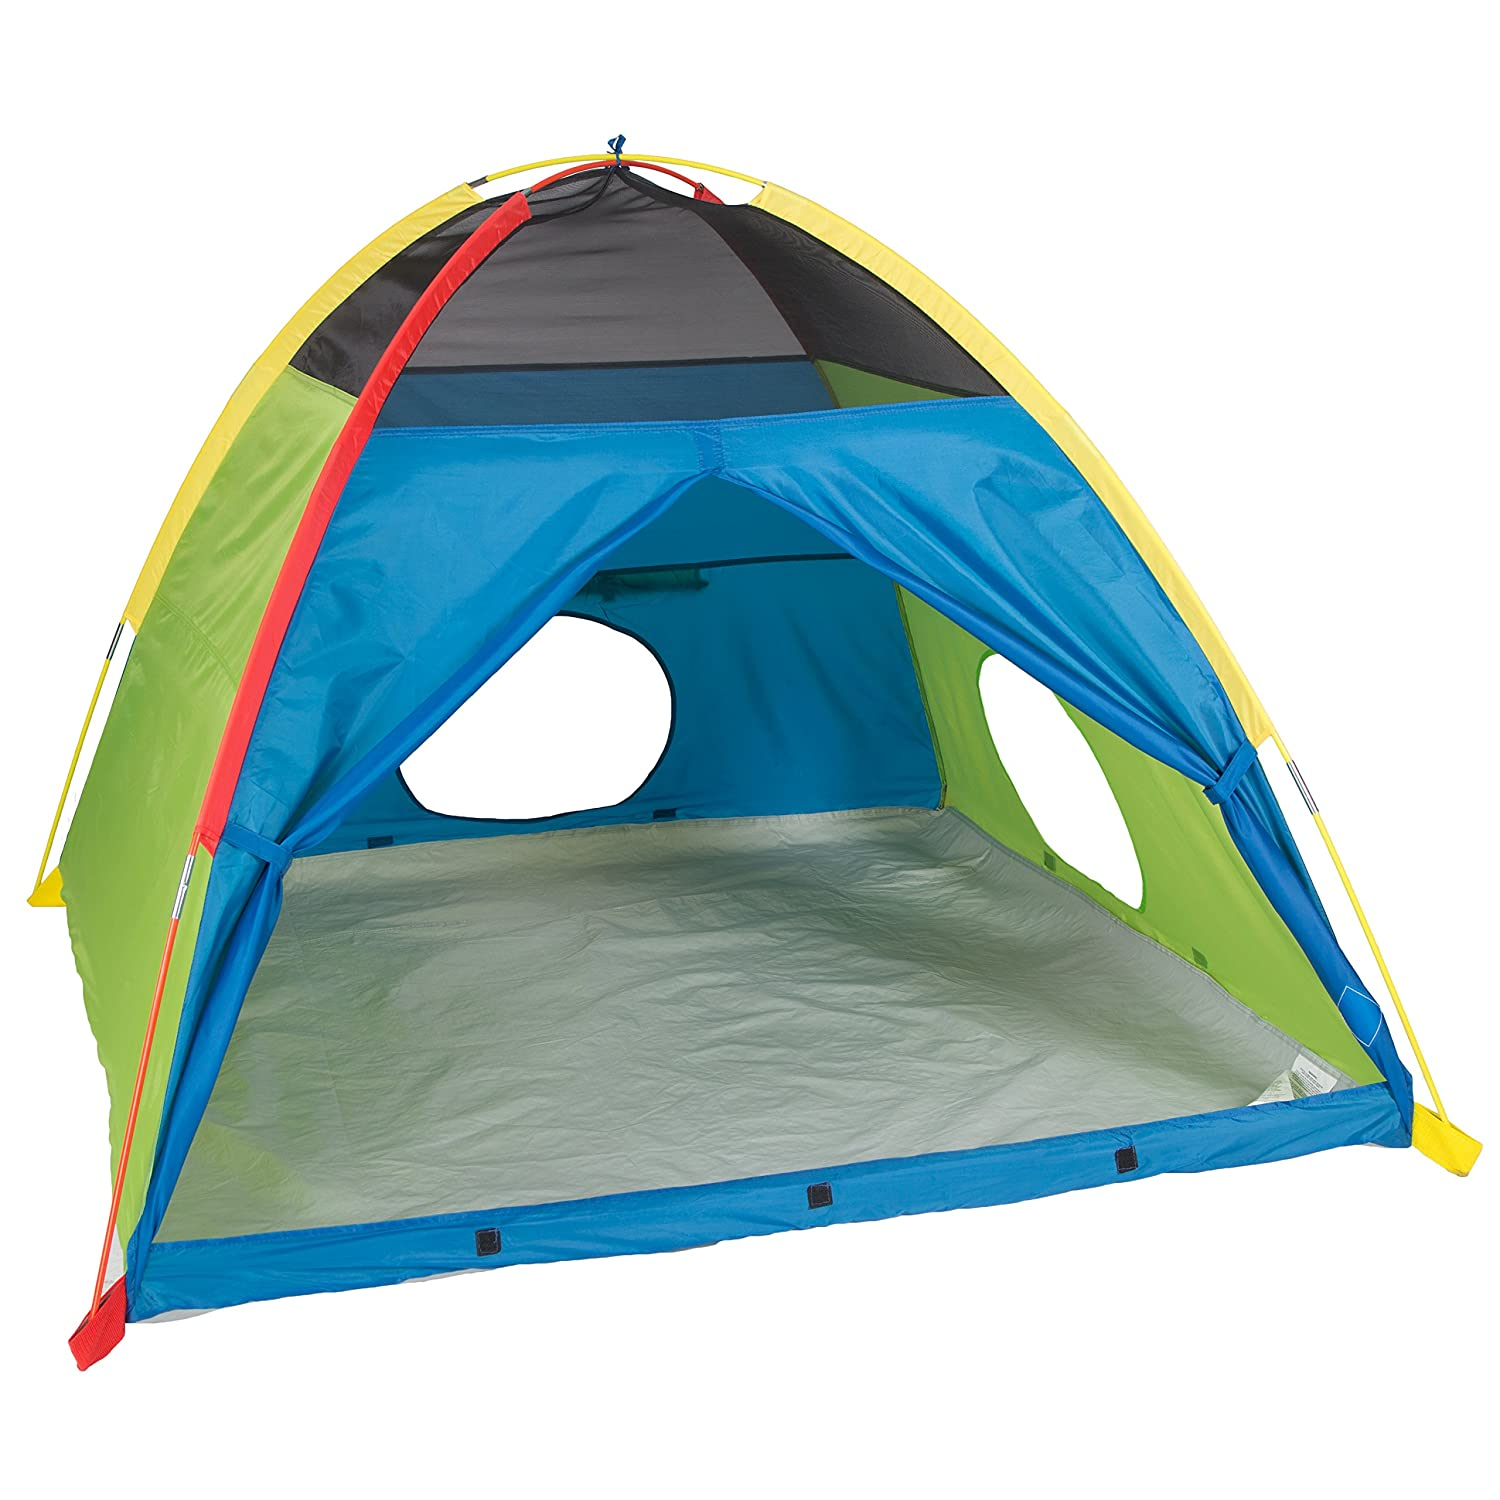 clásico atemporal Pacific Play Tents Super Duper 4 Kids Tent Tent Tent by PACIFIC PLAY TENTS  hasta un 65% de descuento